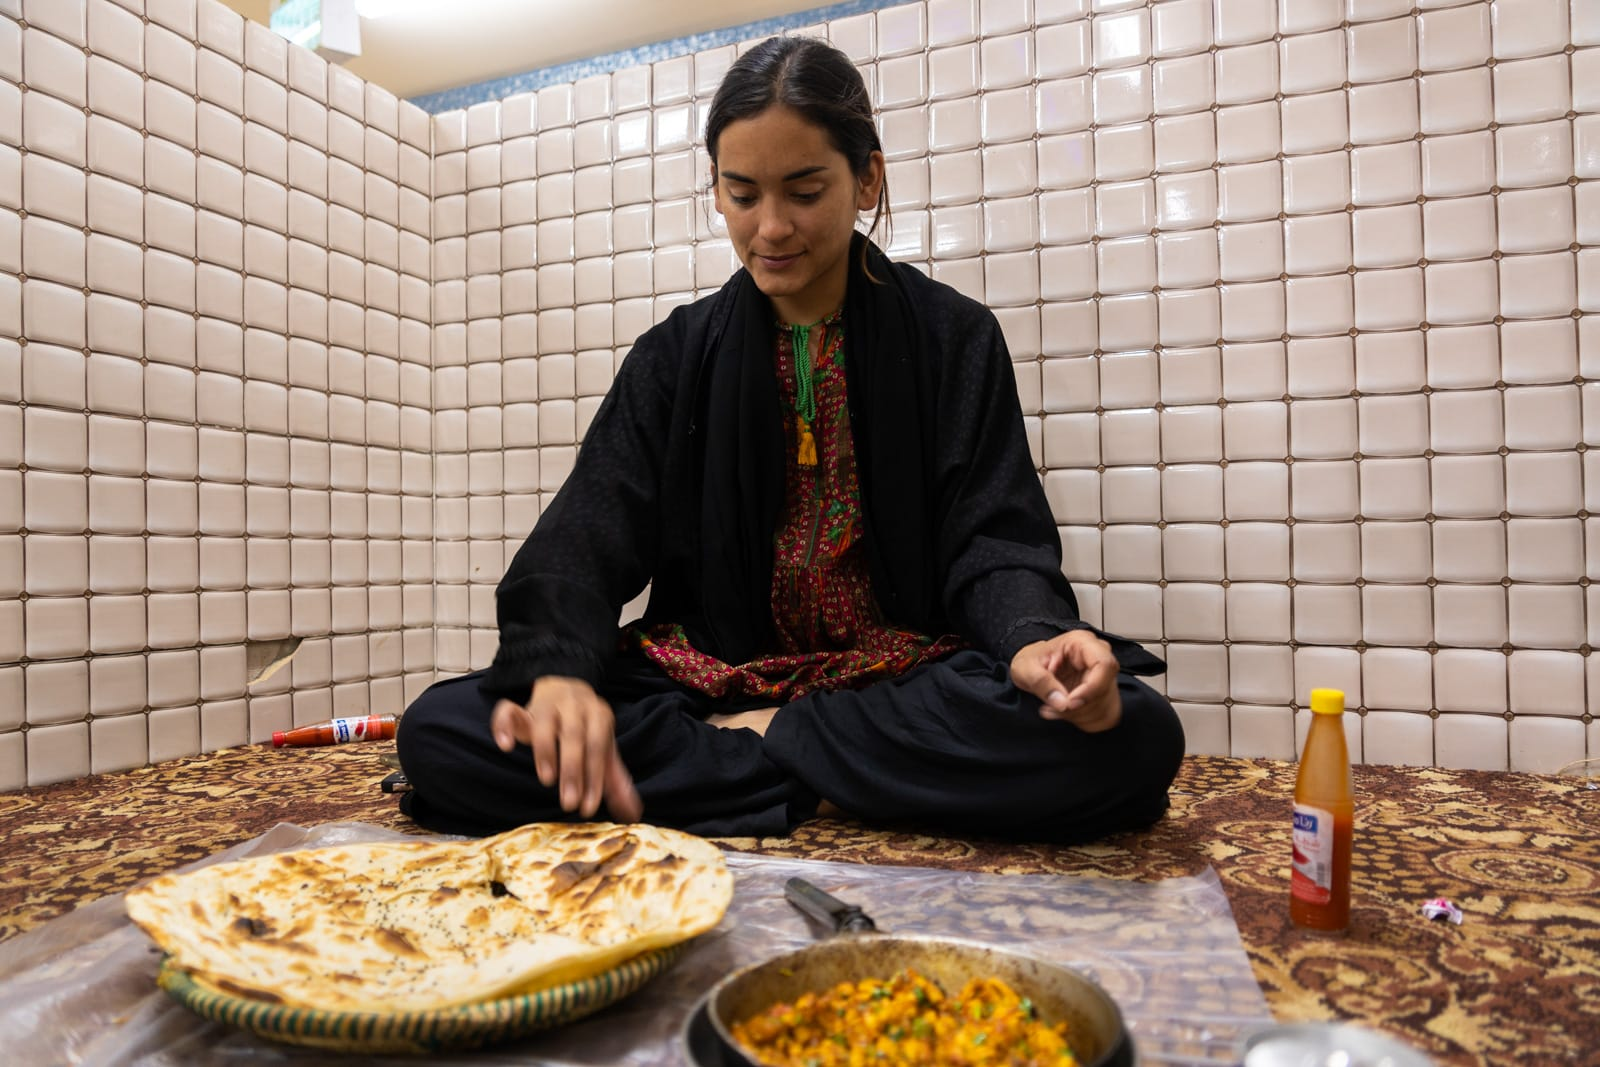 Female traveler eating in a family section of a Saudi Arabia restaurant